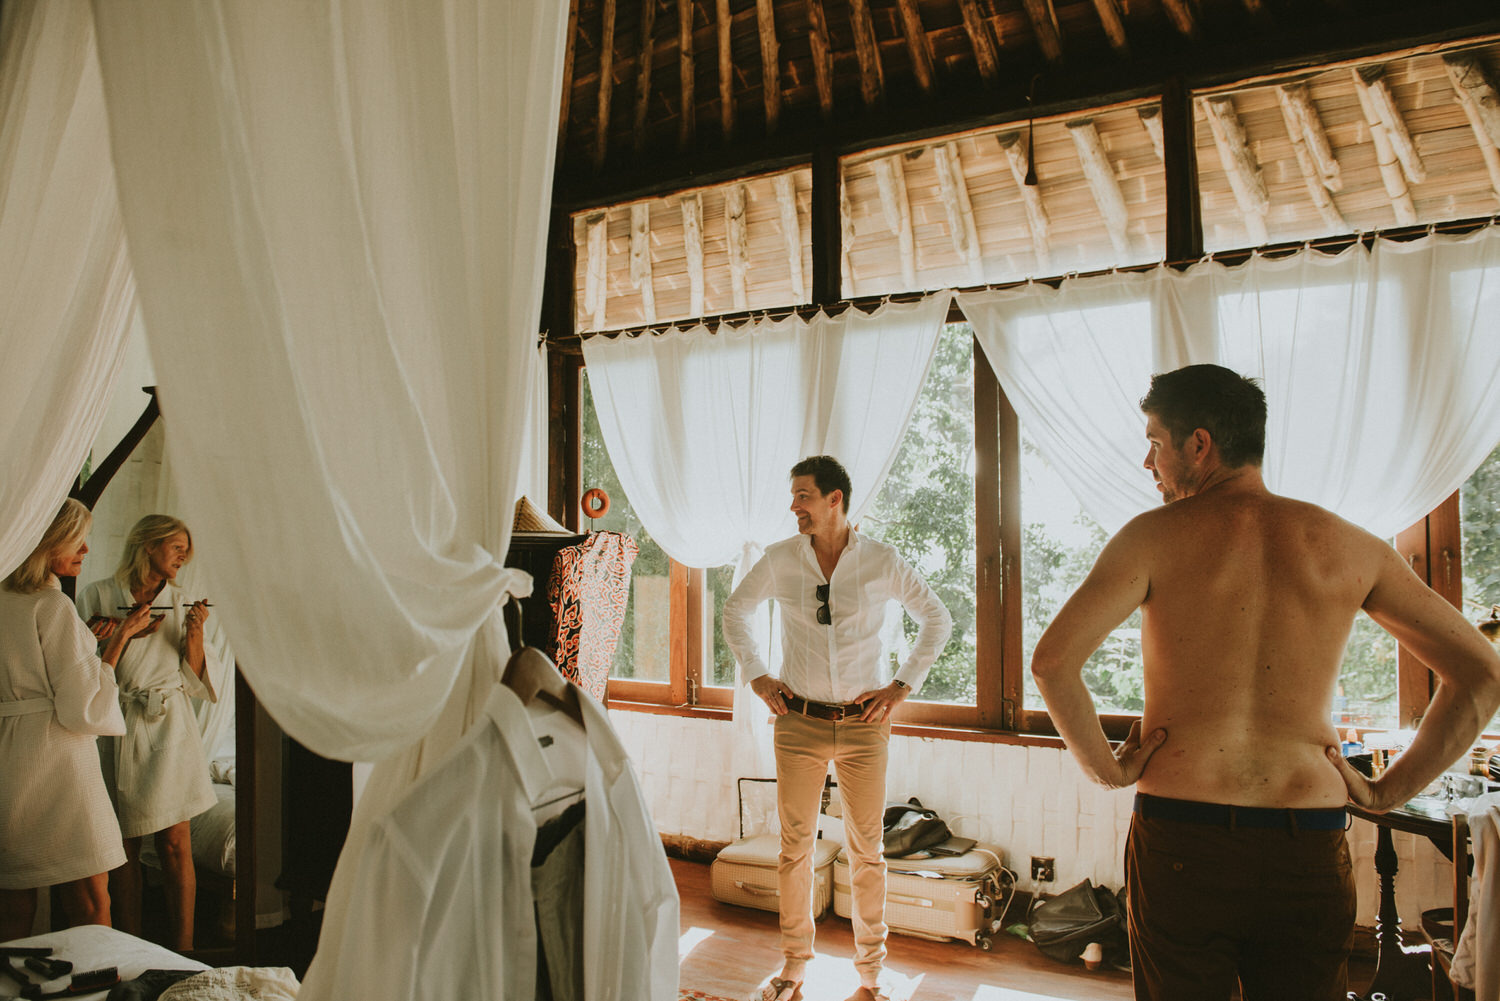 bali-wedding-ubud-wedding-wedding-destination-diktatphotography-kadek-artayasa-elaine-and-glenn-029